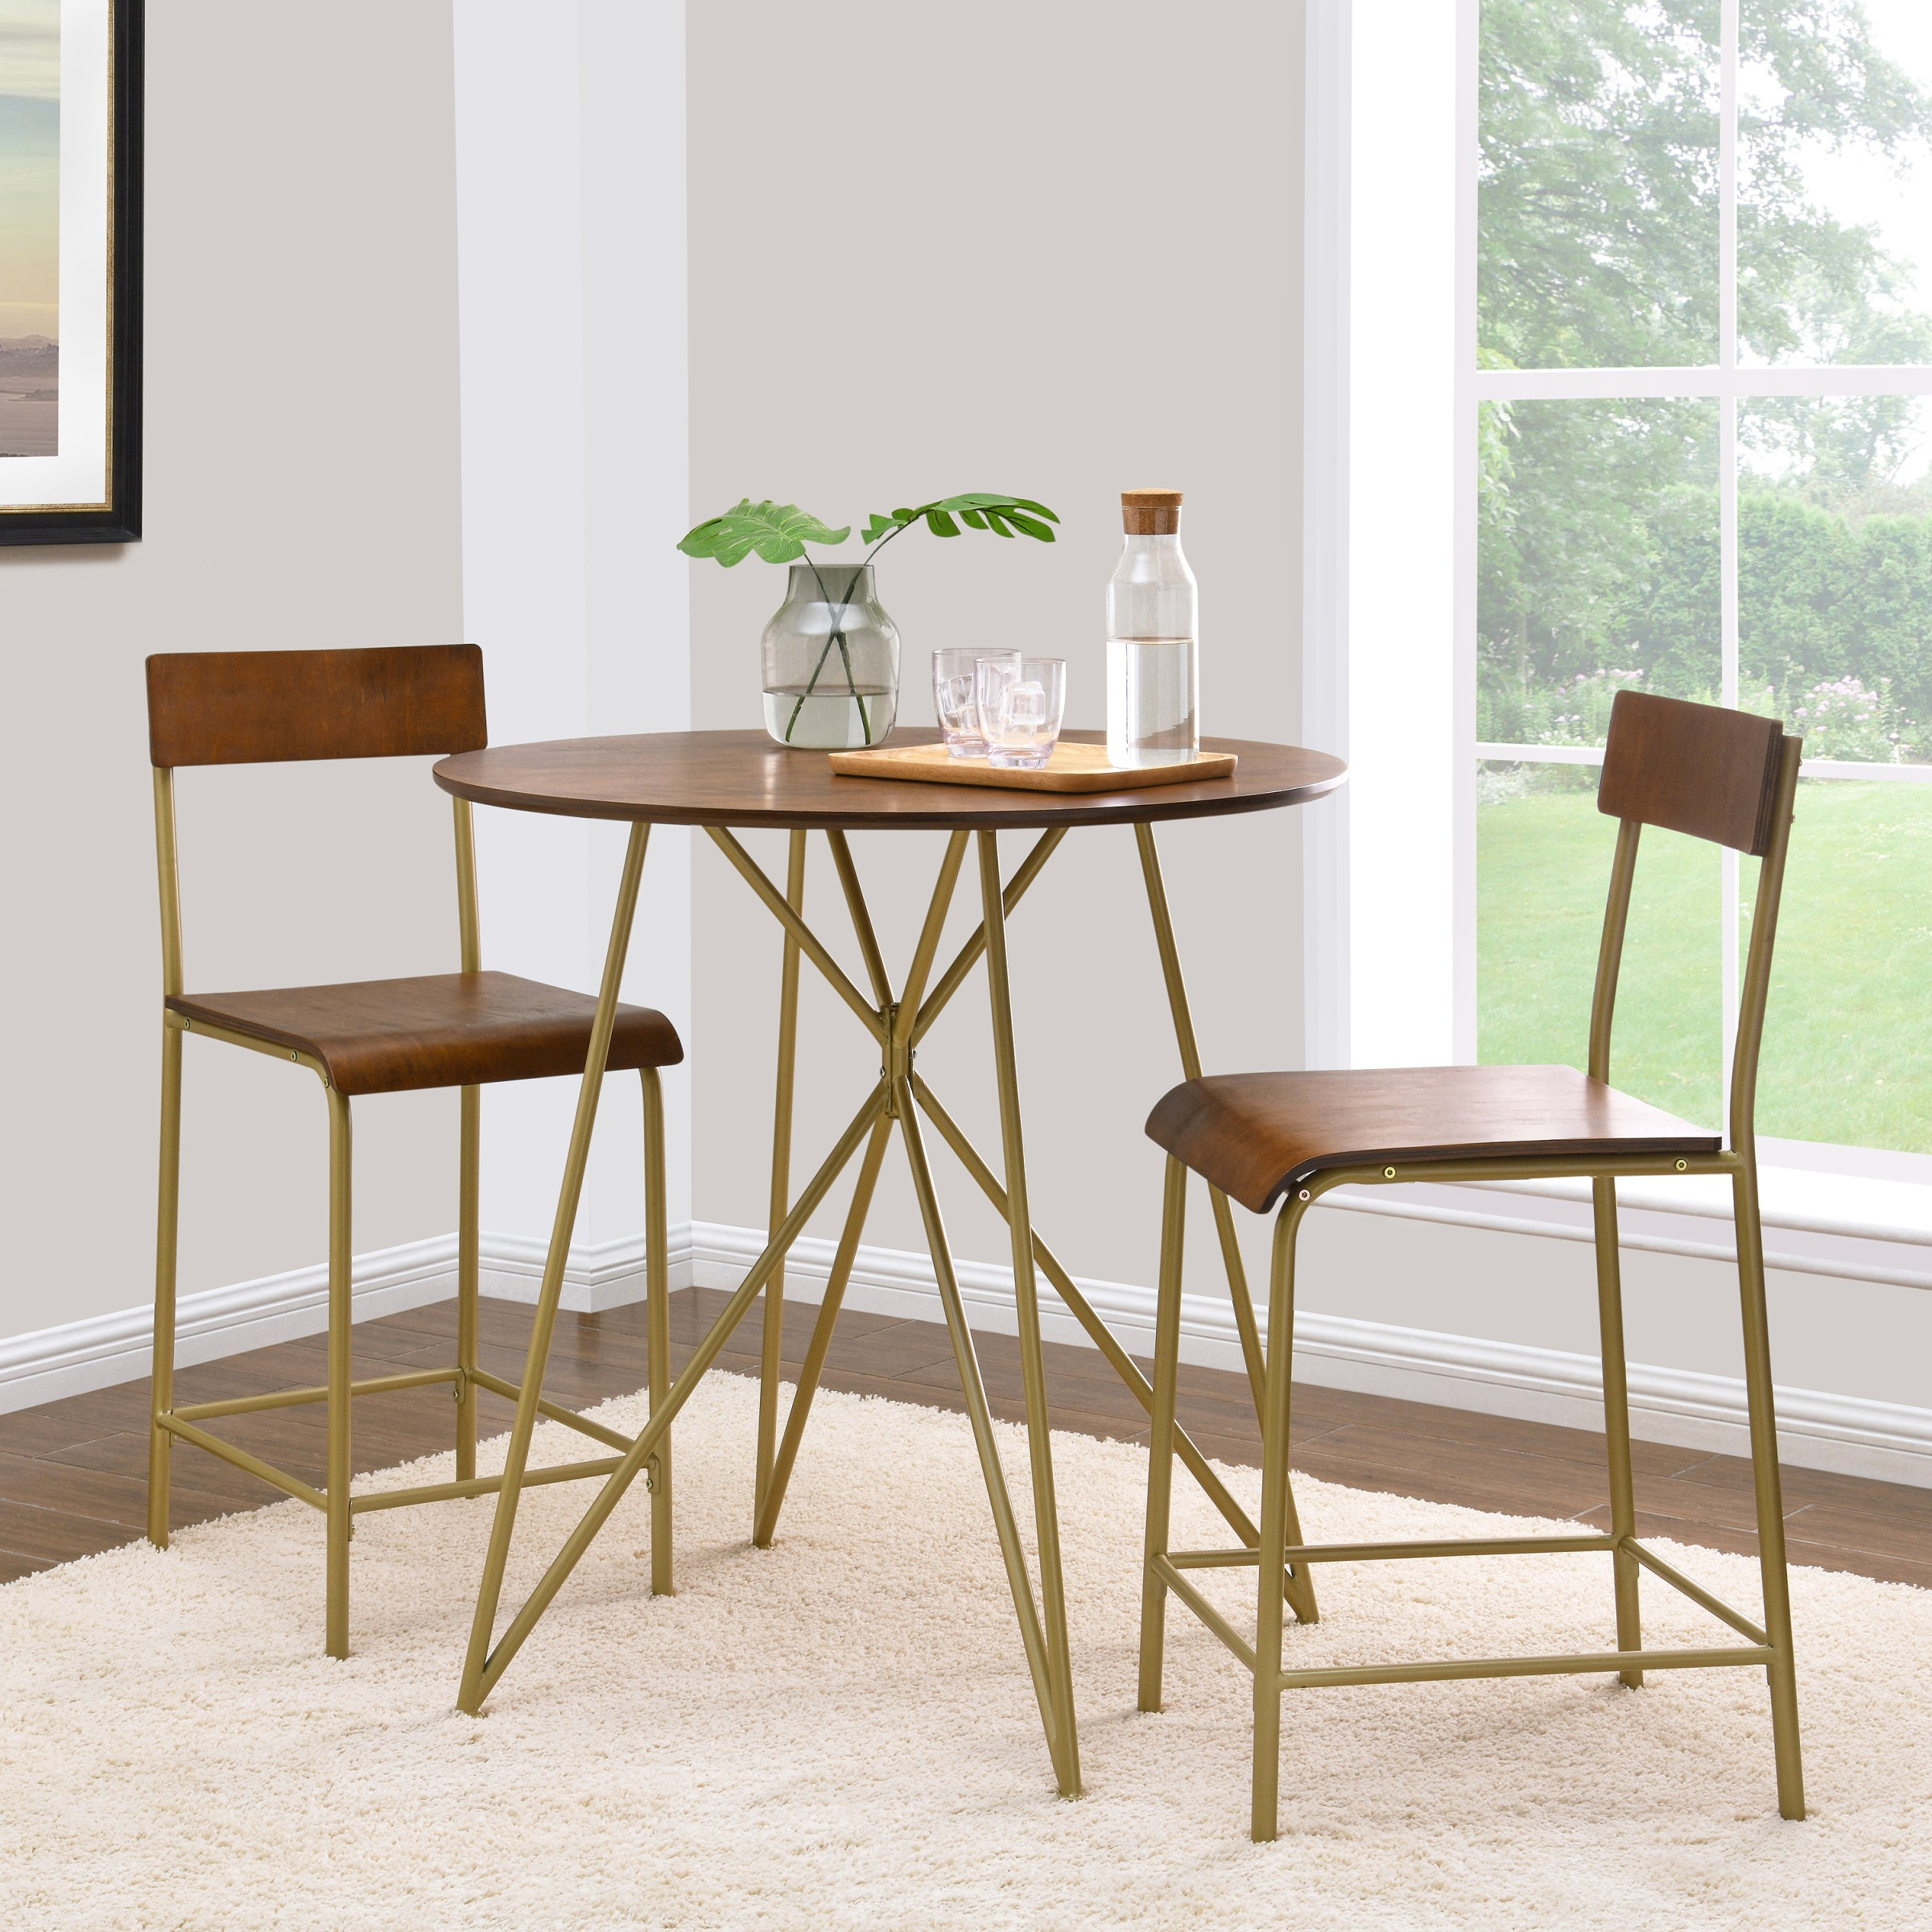 Better Homes Gardens 3 Piece Counter Height Genevieve Dining Set Wood With Gold Frame